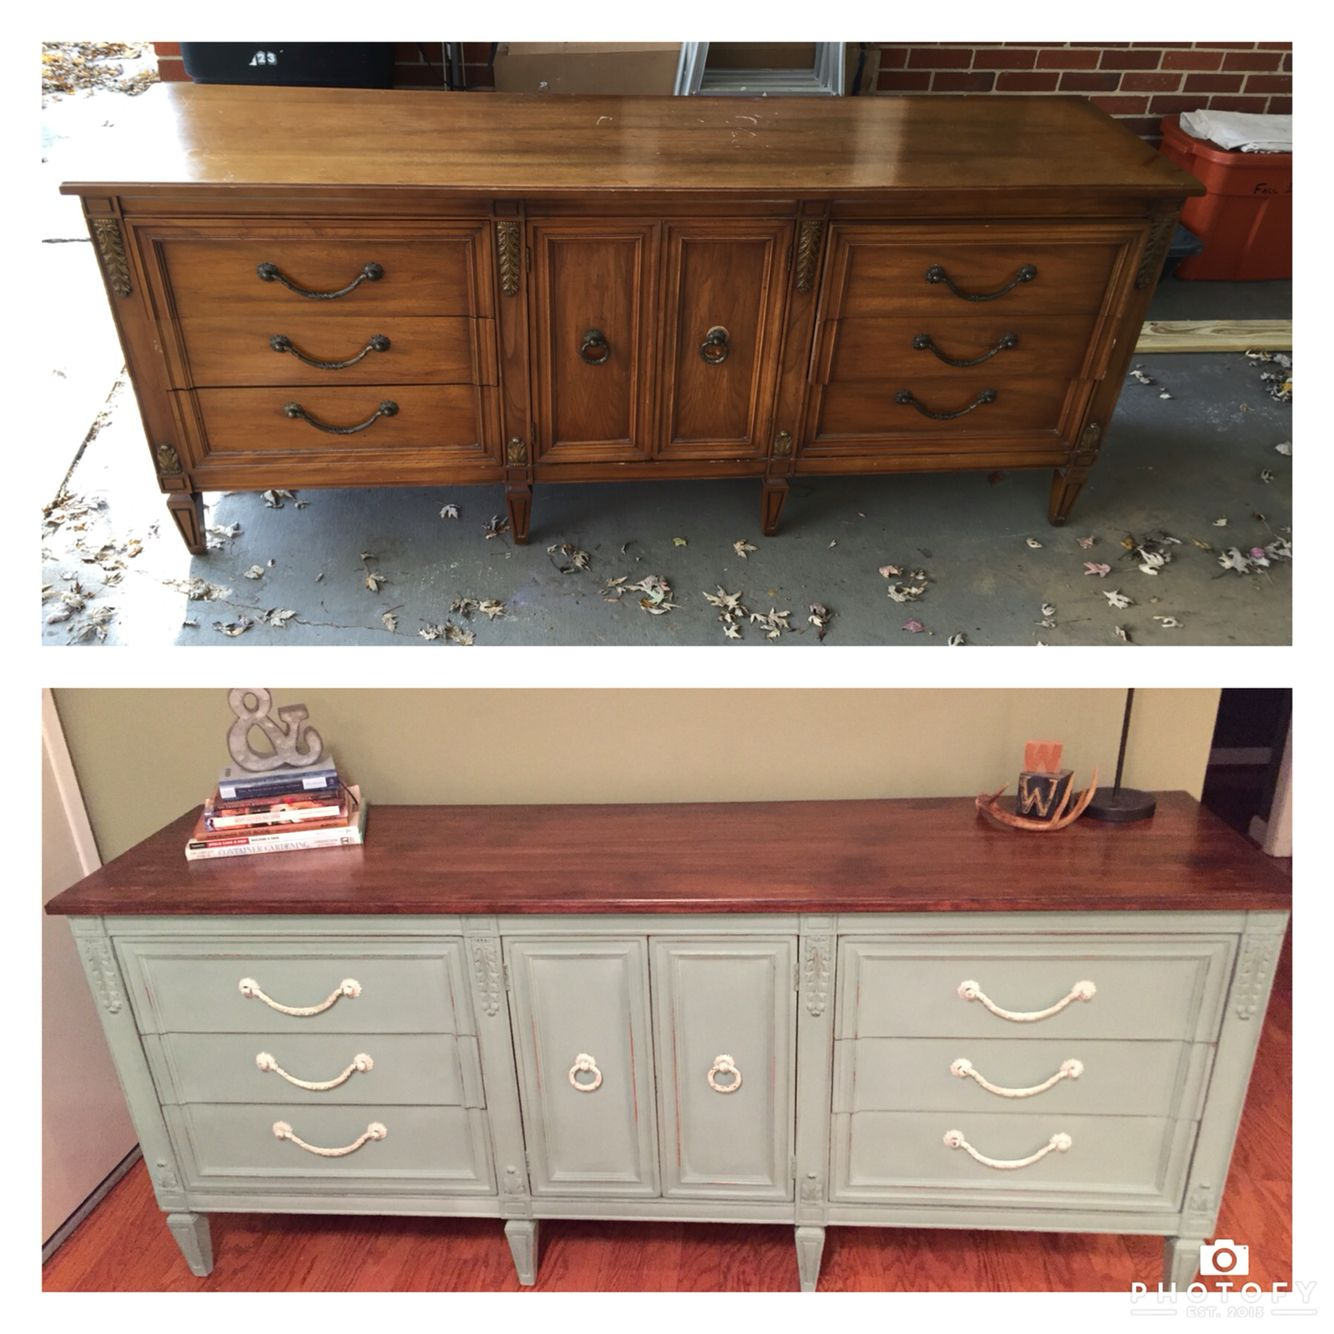 Annie Sloan Chalk Painted Dresser Diy Before And After Duck Egg Blue Annie Sloan Furniture Repurposed Furniture Furniture